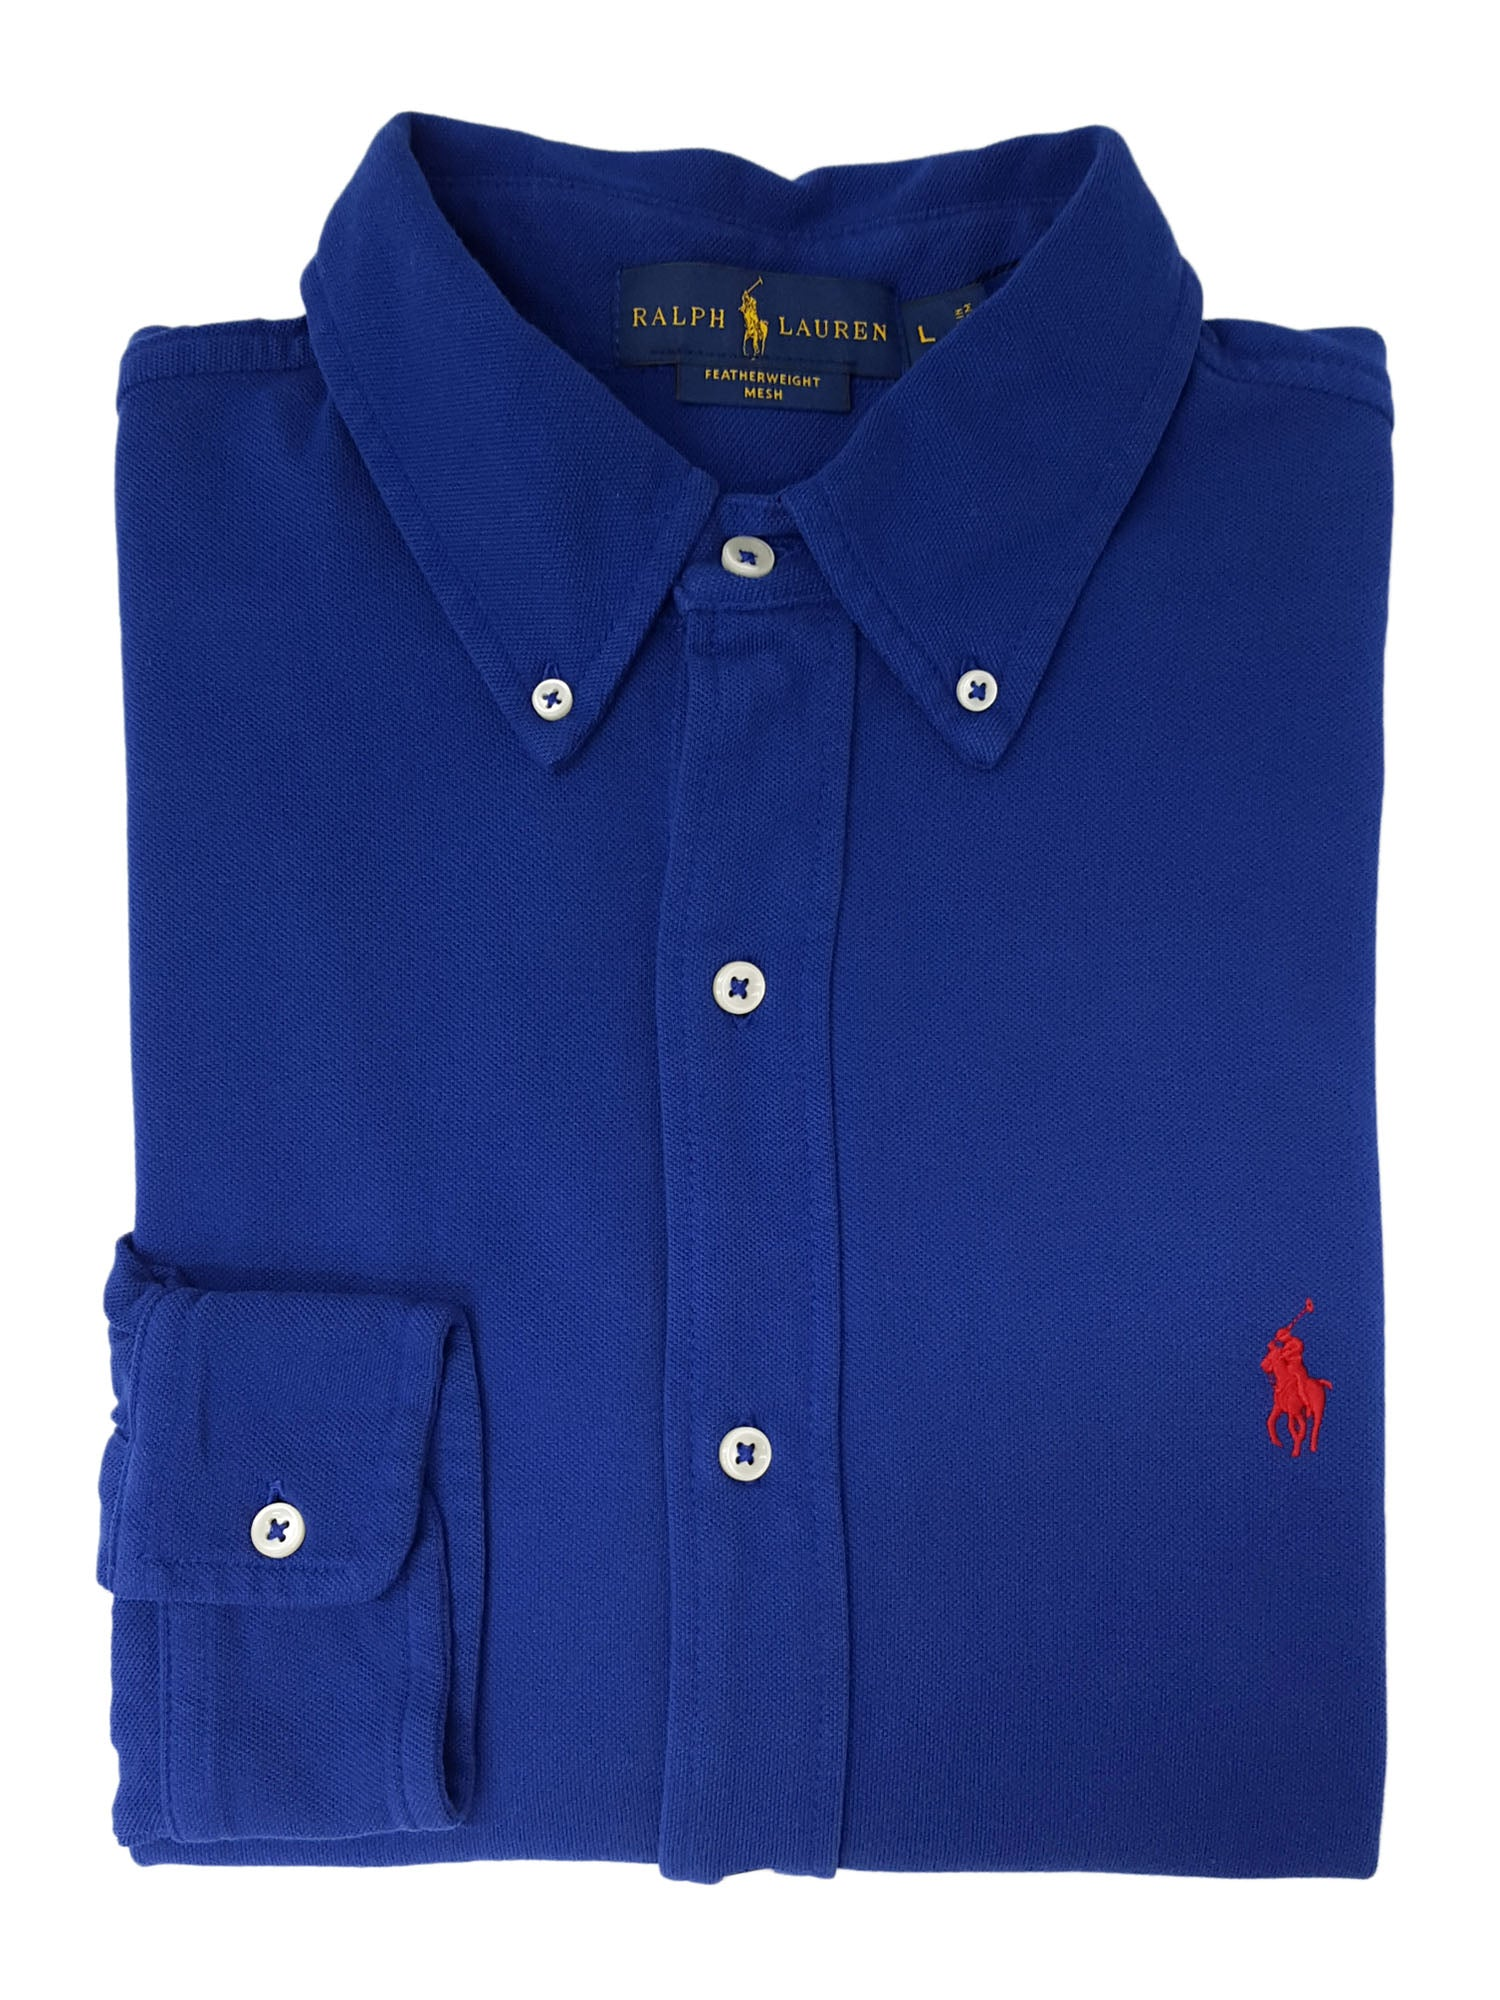 90f566d0 Polo Ralph Lauren Men's Featherweight Mesh Shirt – Retail Trunk